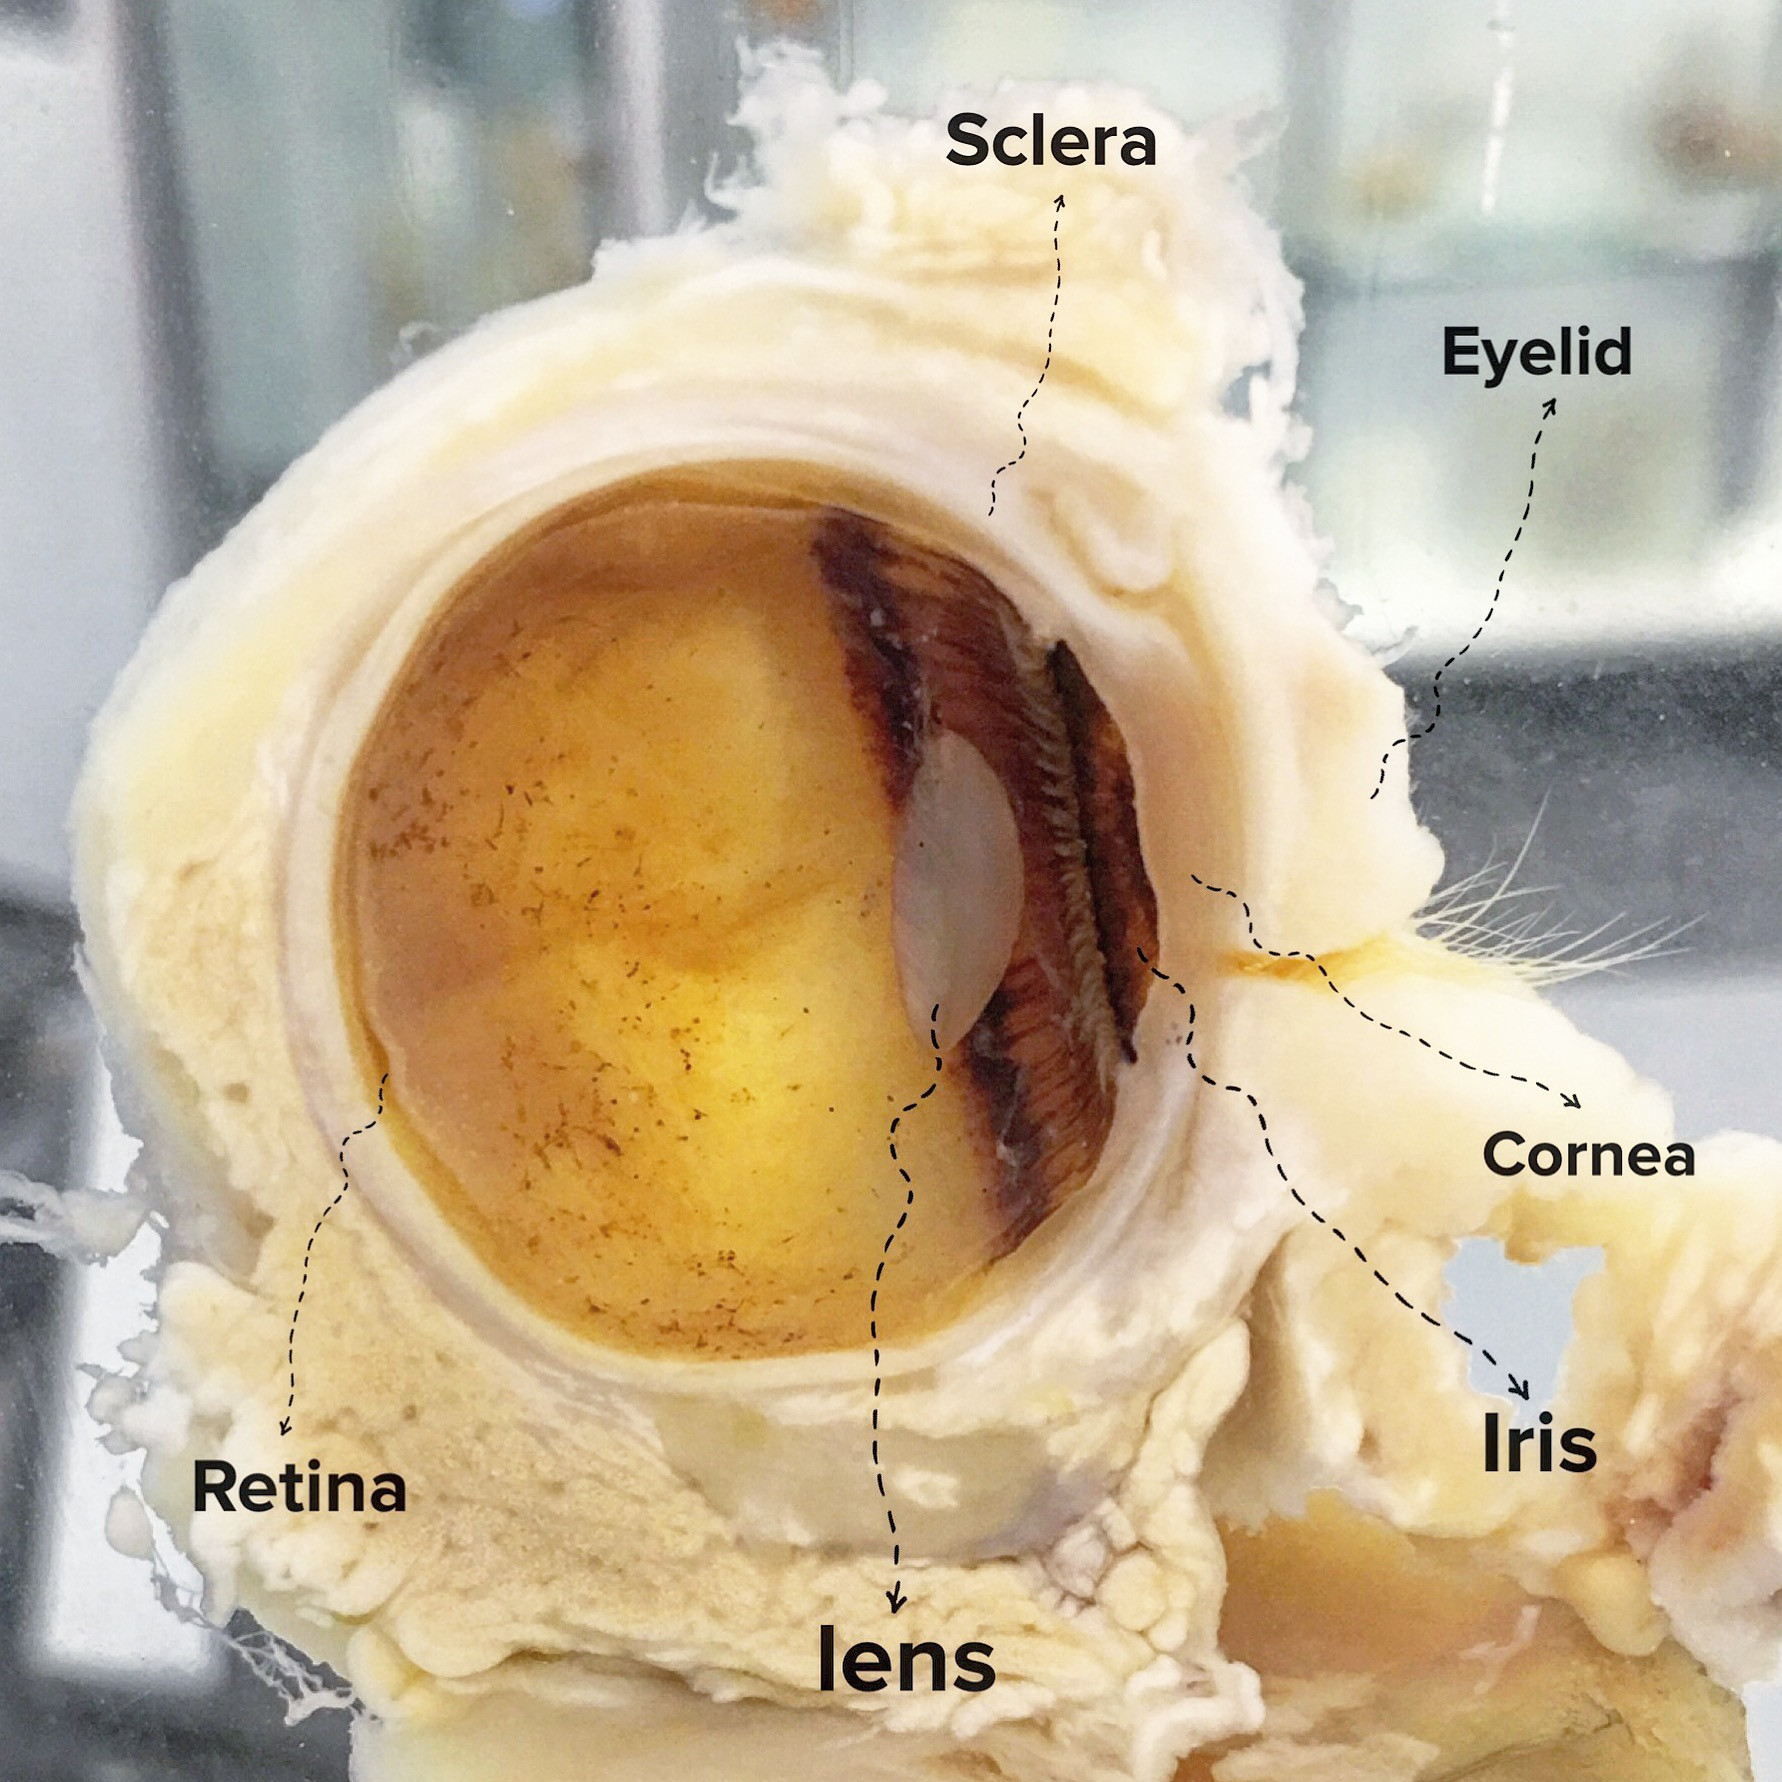 Dissected eye showing the pasrts relevant to sight.